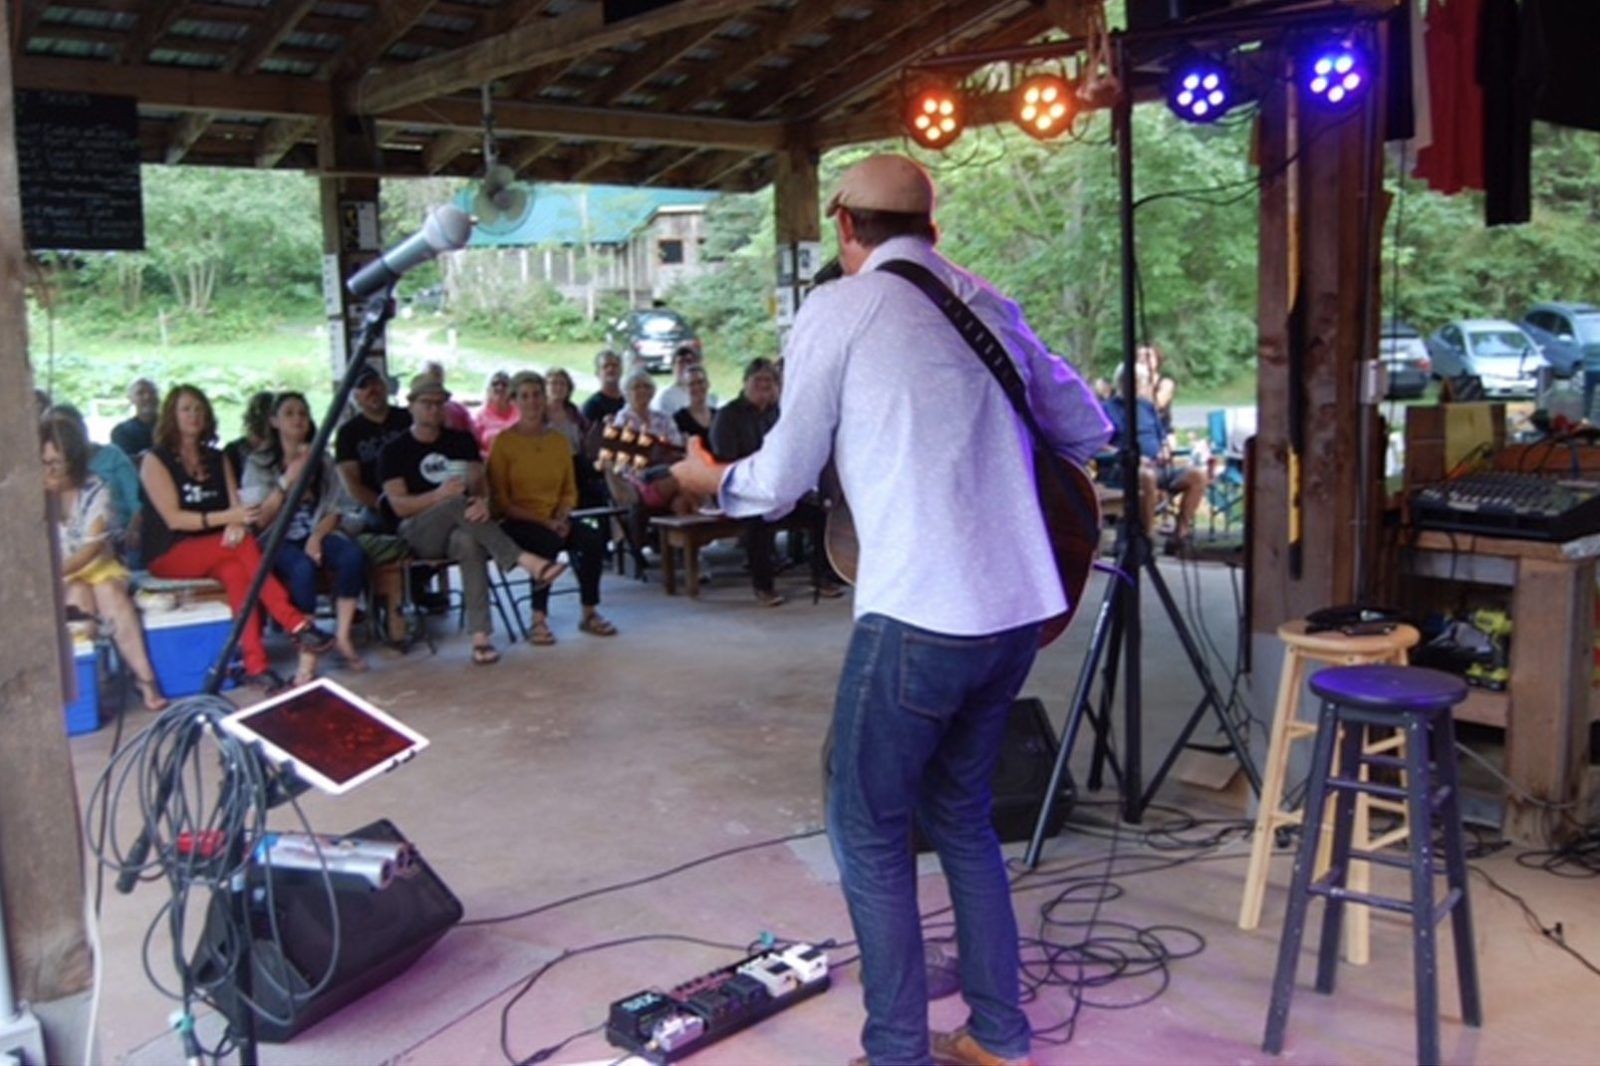 Etwell concert series performers on stage